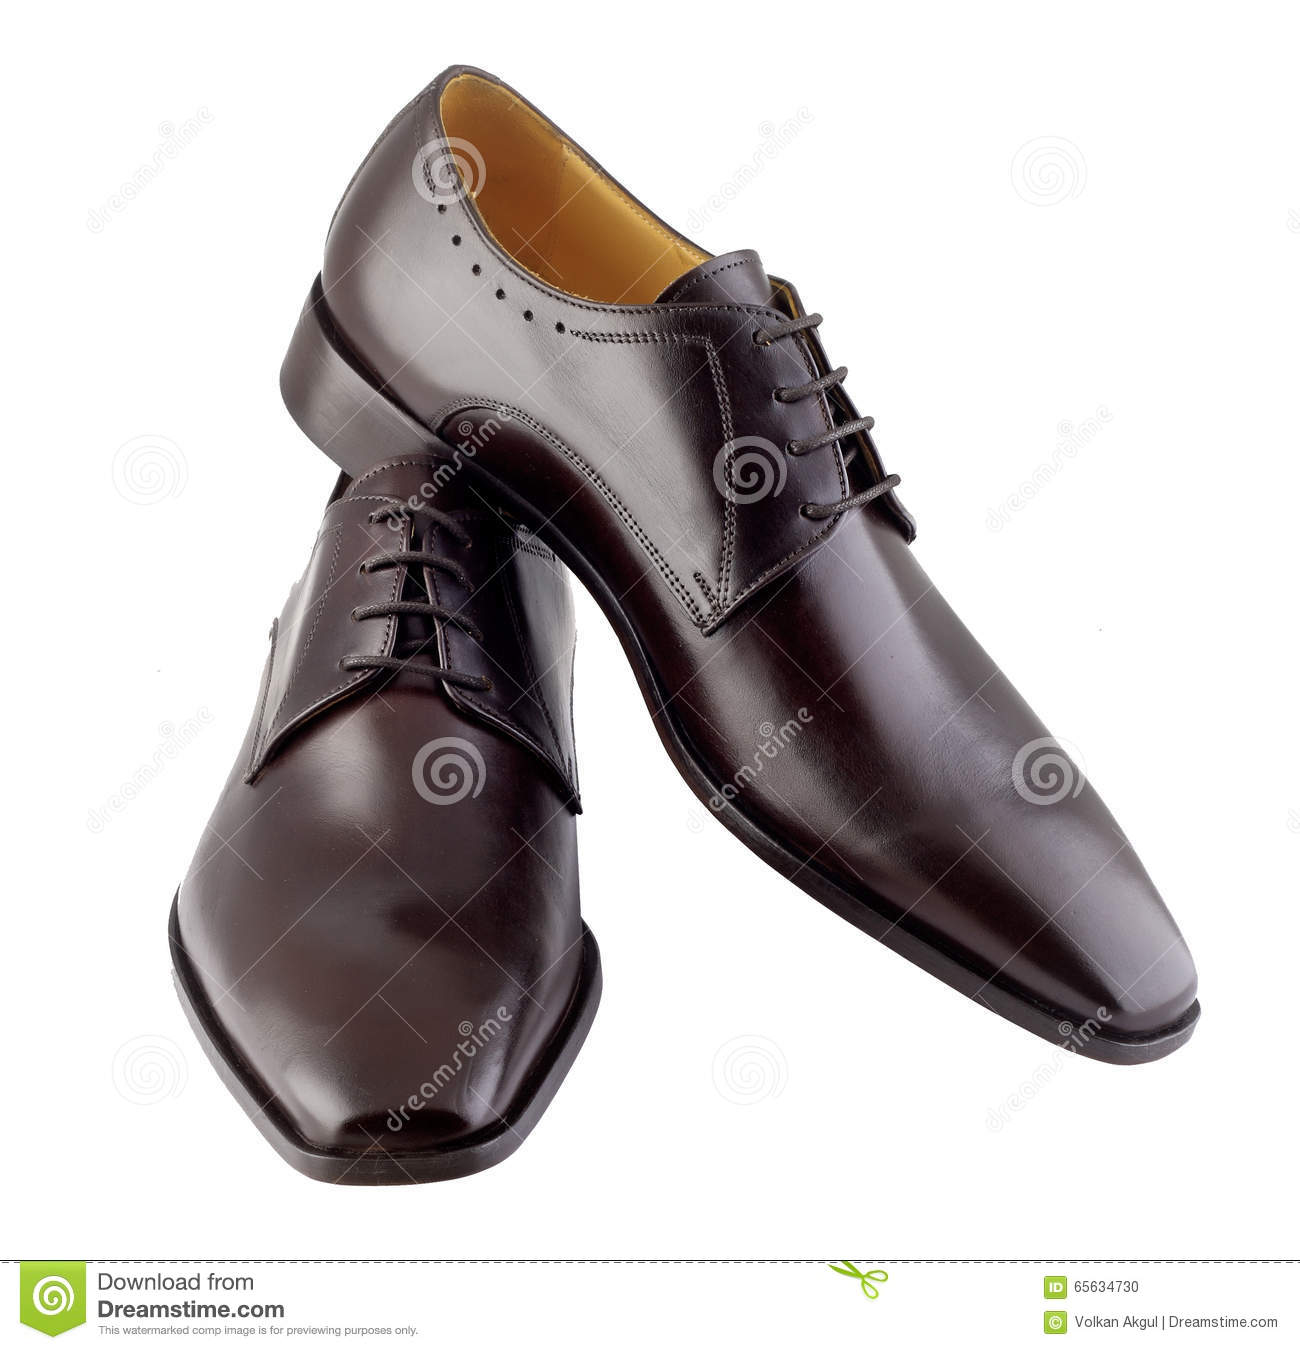 Chaussure d homme